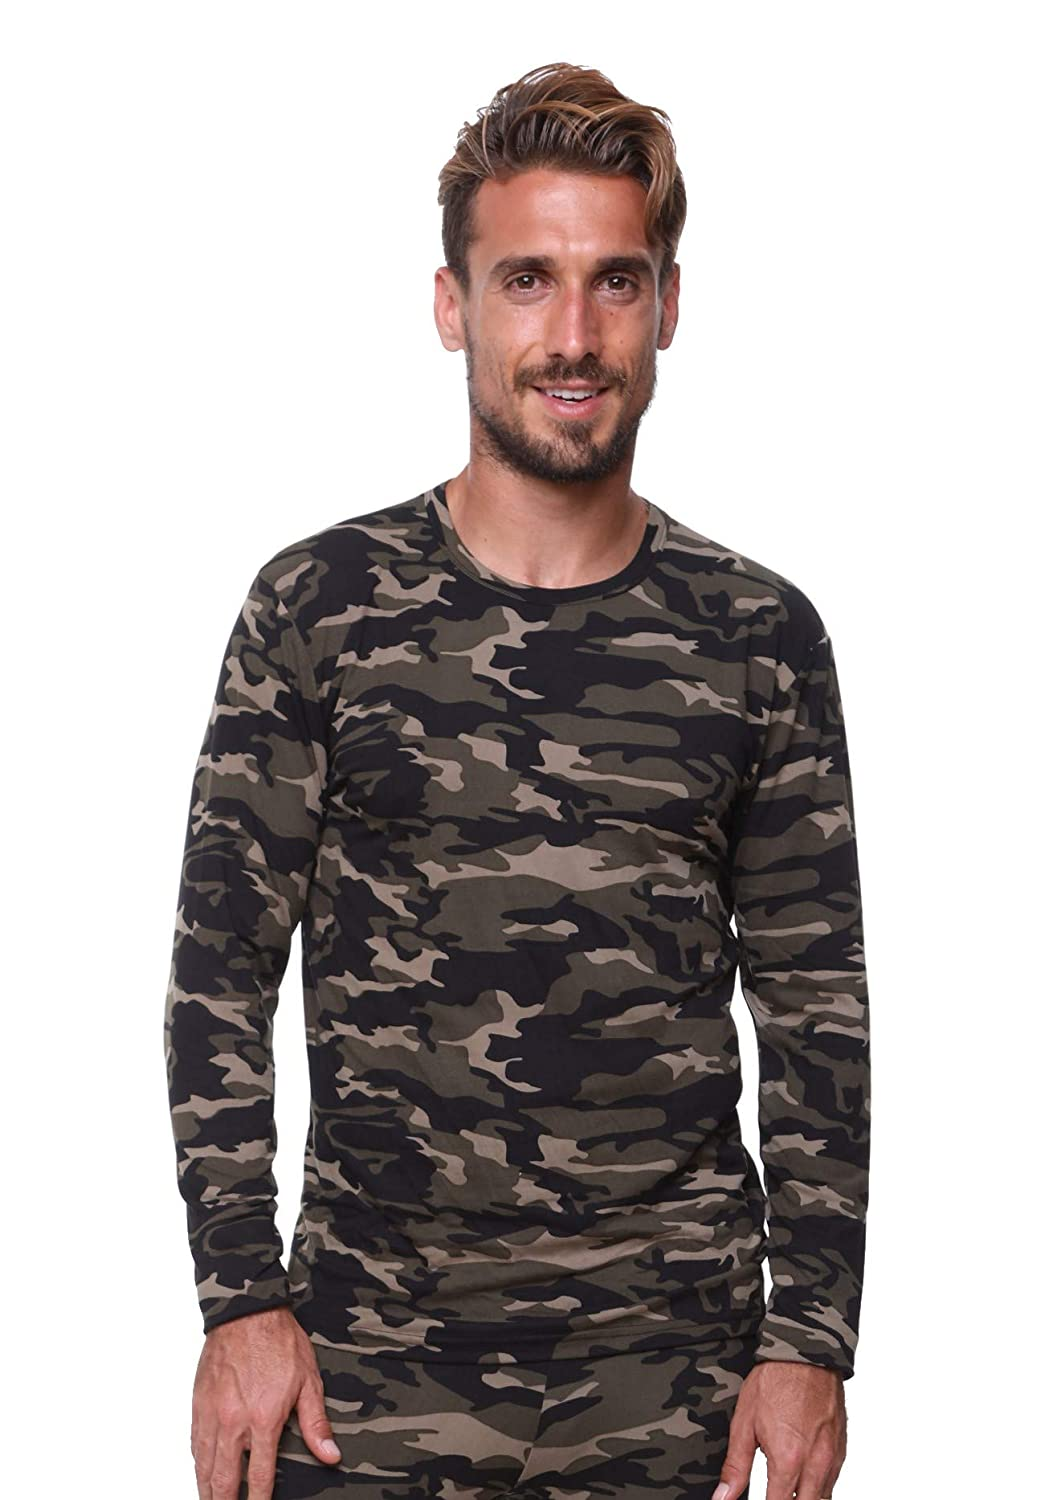 Men Thermal Underwear Top by Outland; Base Layer; Soft Lightweight Warm Fleece Very Warm Excellent Wicking (Small Camouflage) THT5051